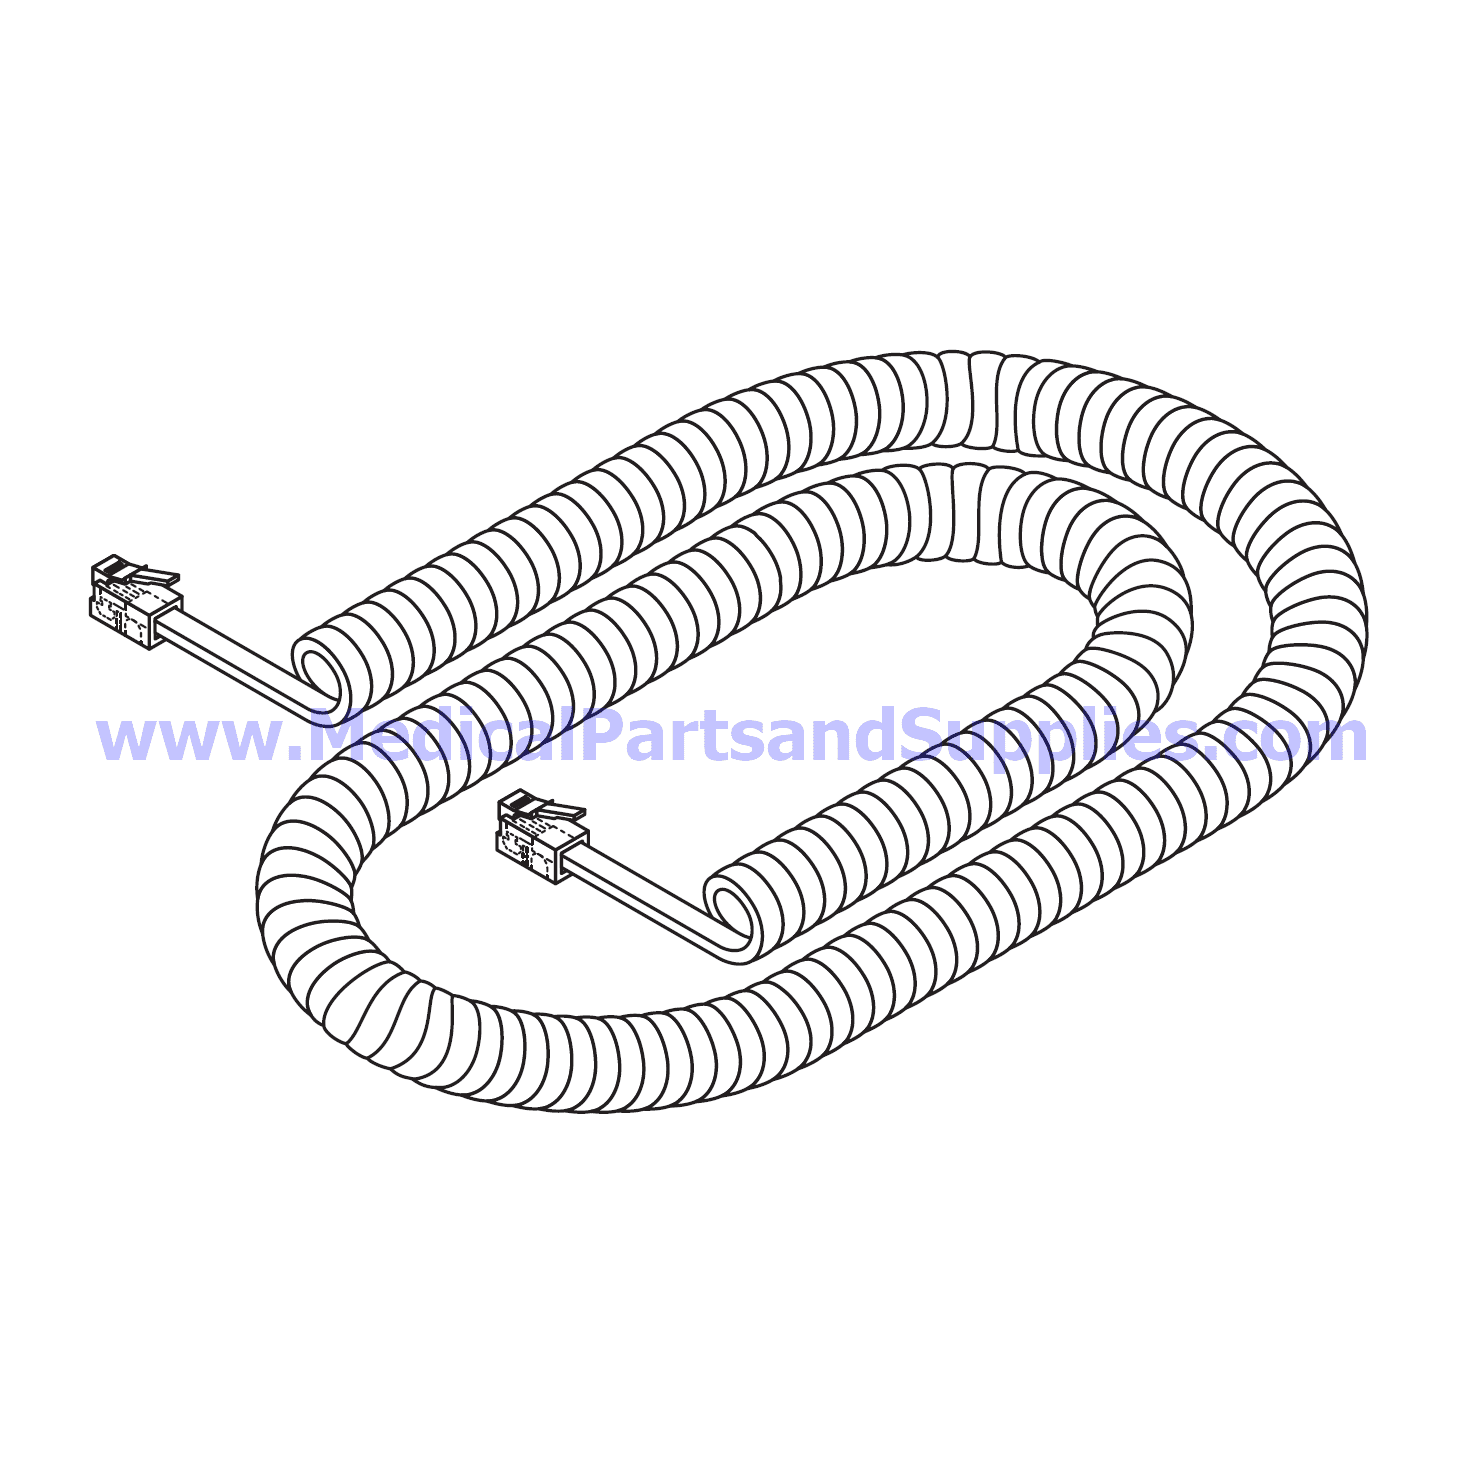 phone cable wiring diagram wiring diagram database  phone cord cable wiring diagram database wall phone jack wiring diagram phone cable wiring diagram